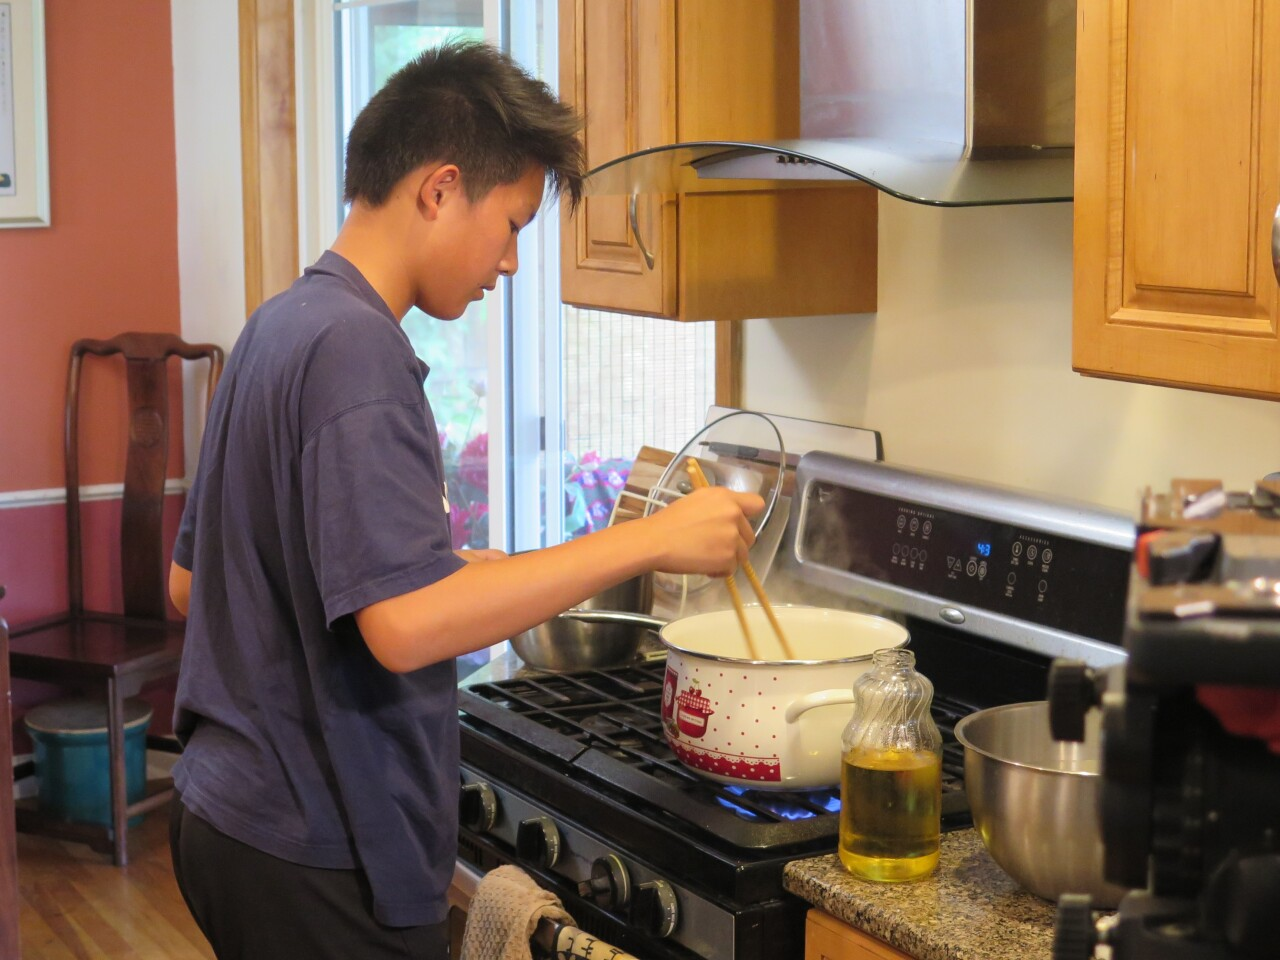 Edward Zha cooking noodles for Biang Biang Mian. He is wearing a dark blue t-shirt and is using chop sticks to stir a pot of noodles.